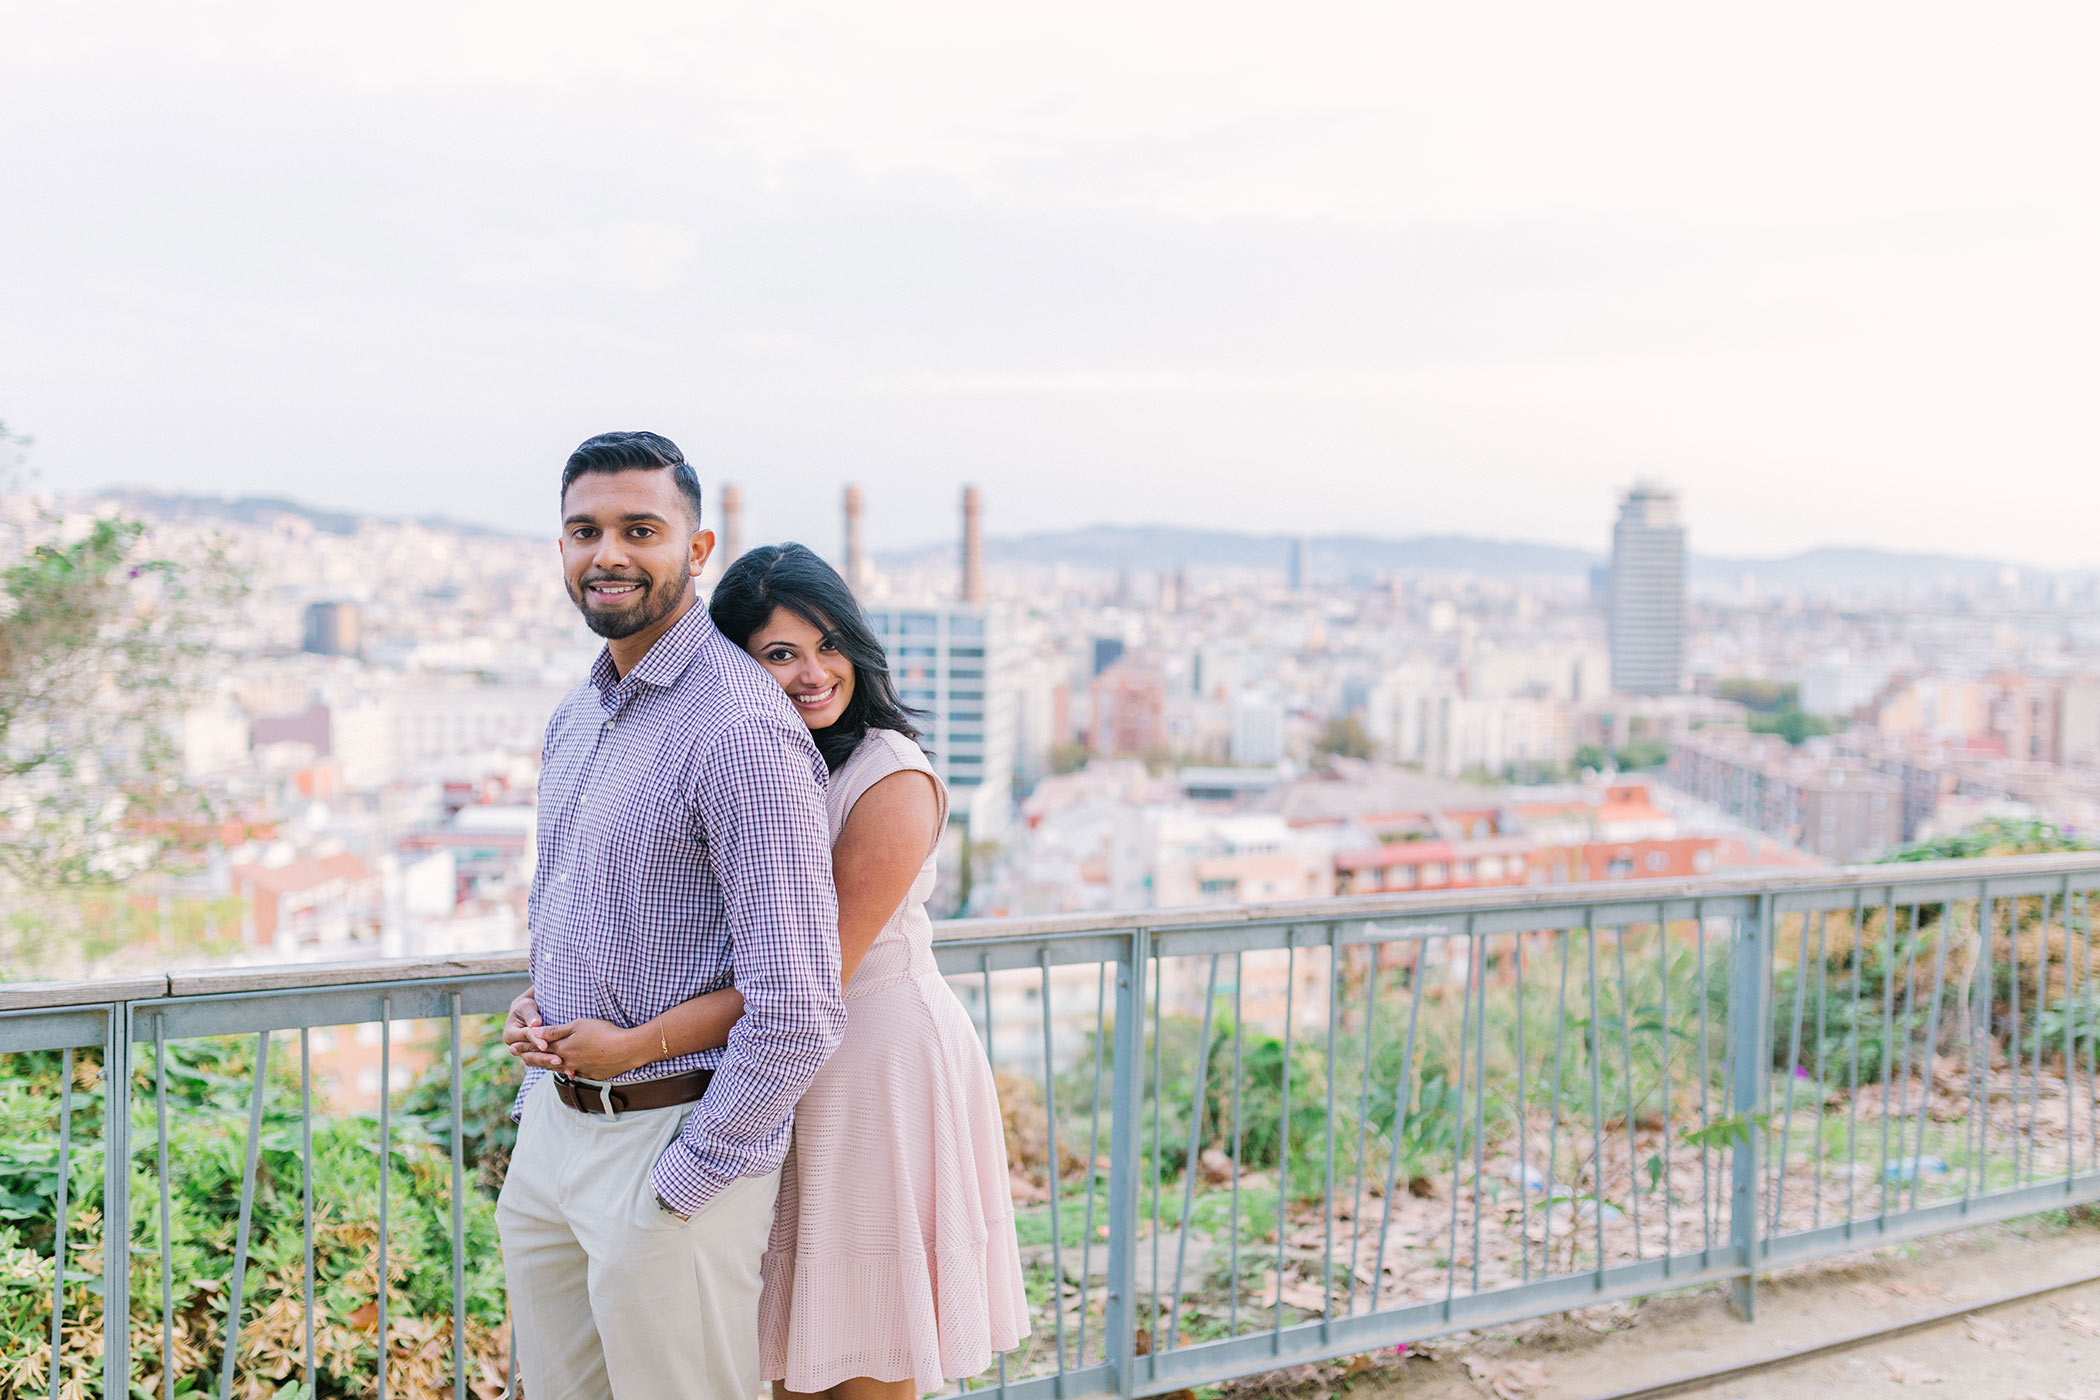 Beautiful young couple | Destination Wedding Photographer Barcelona | Lena Karelova Photography|Film Wedding Photographer